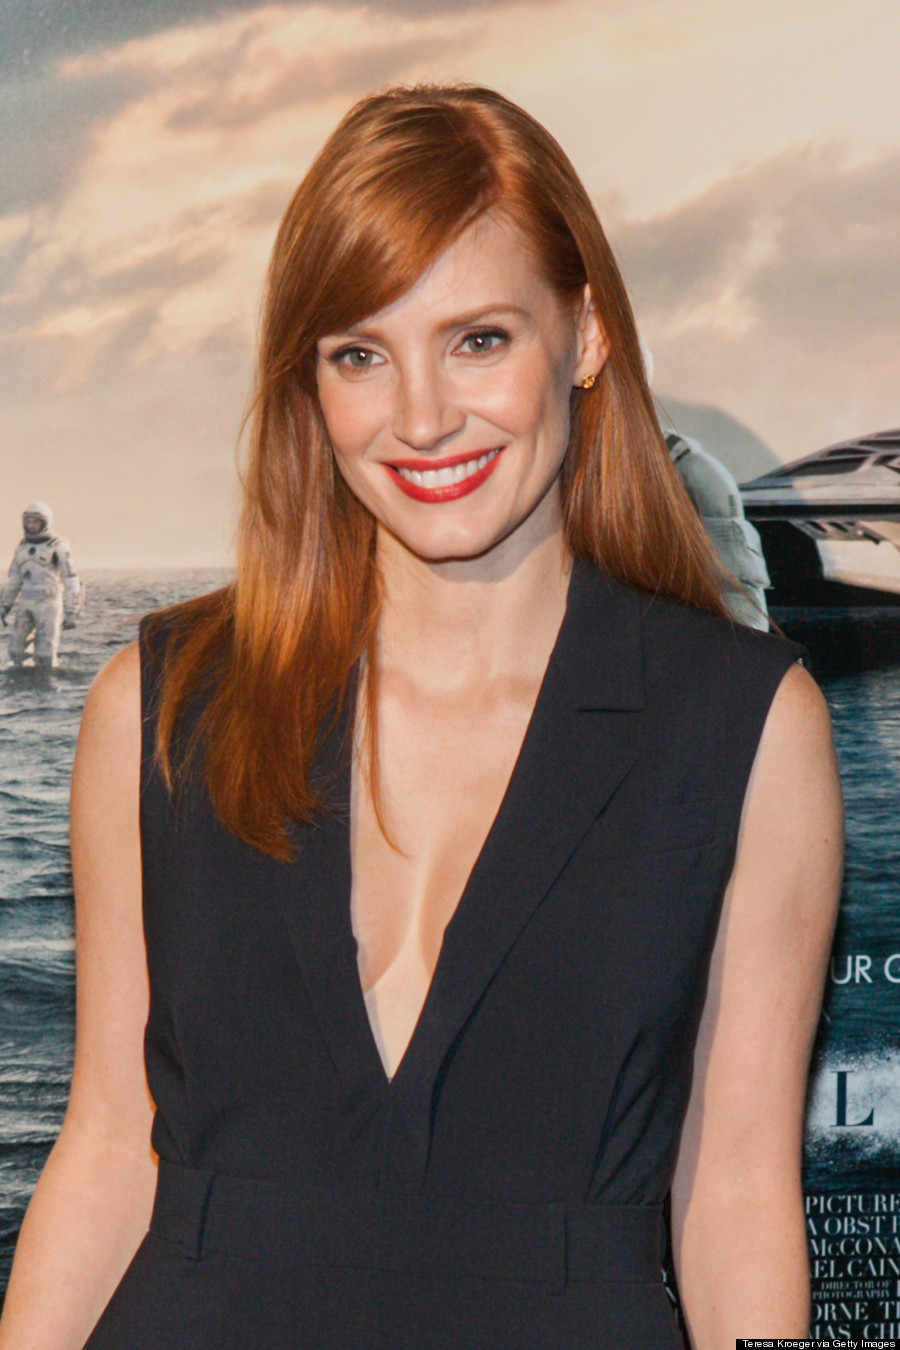 Jessica Chastain's 'Interstellar' Jumpsuit Is Really Hot Jessica Chastain